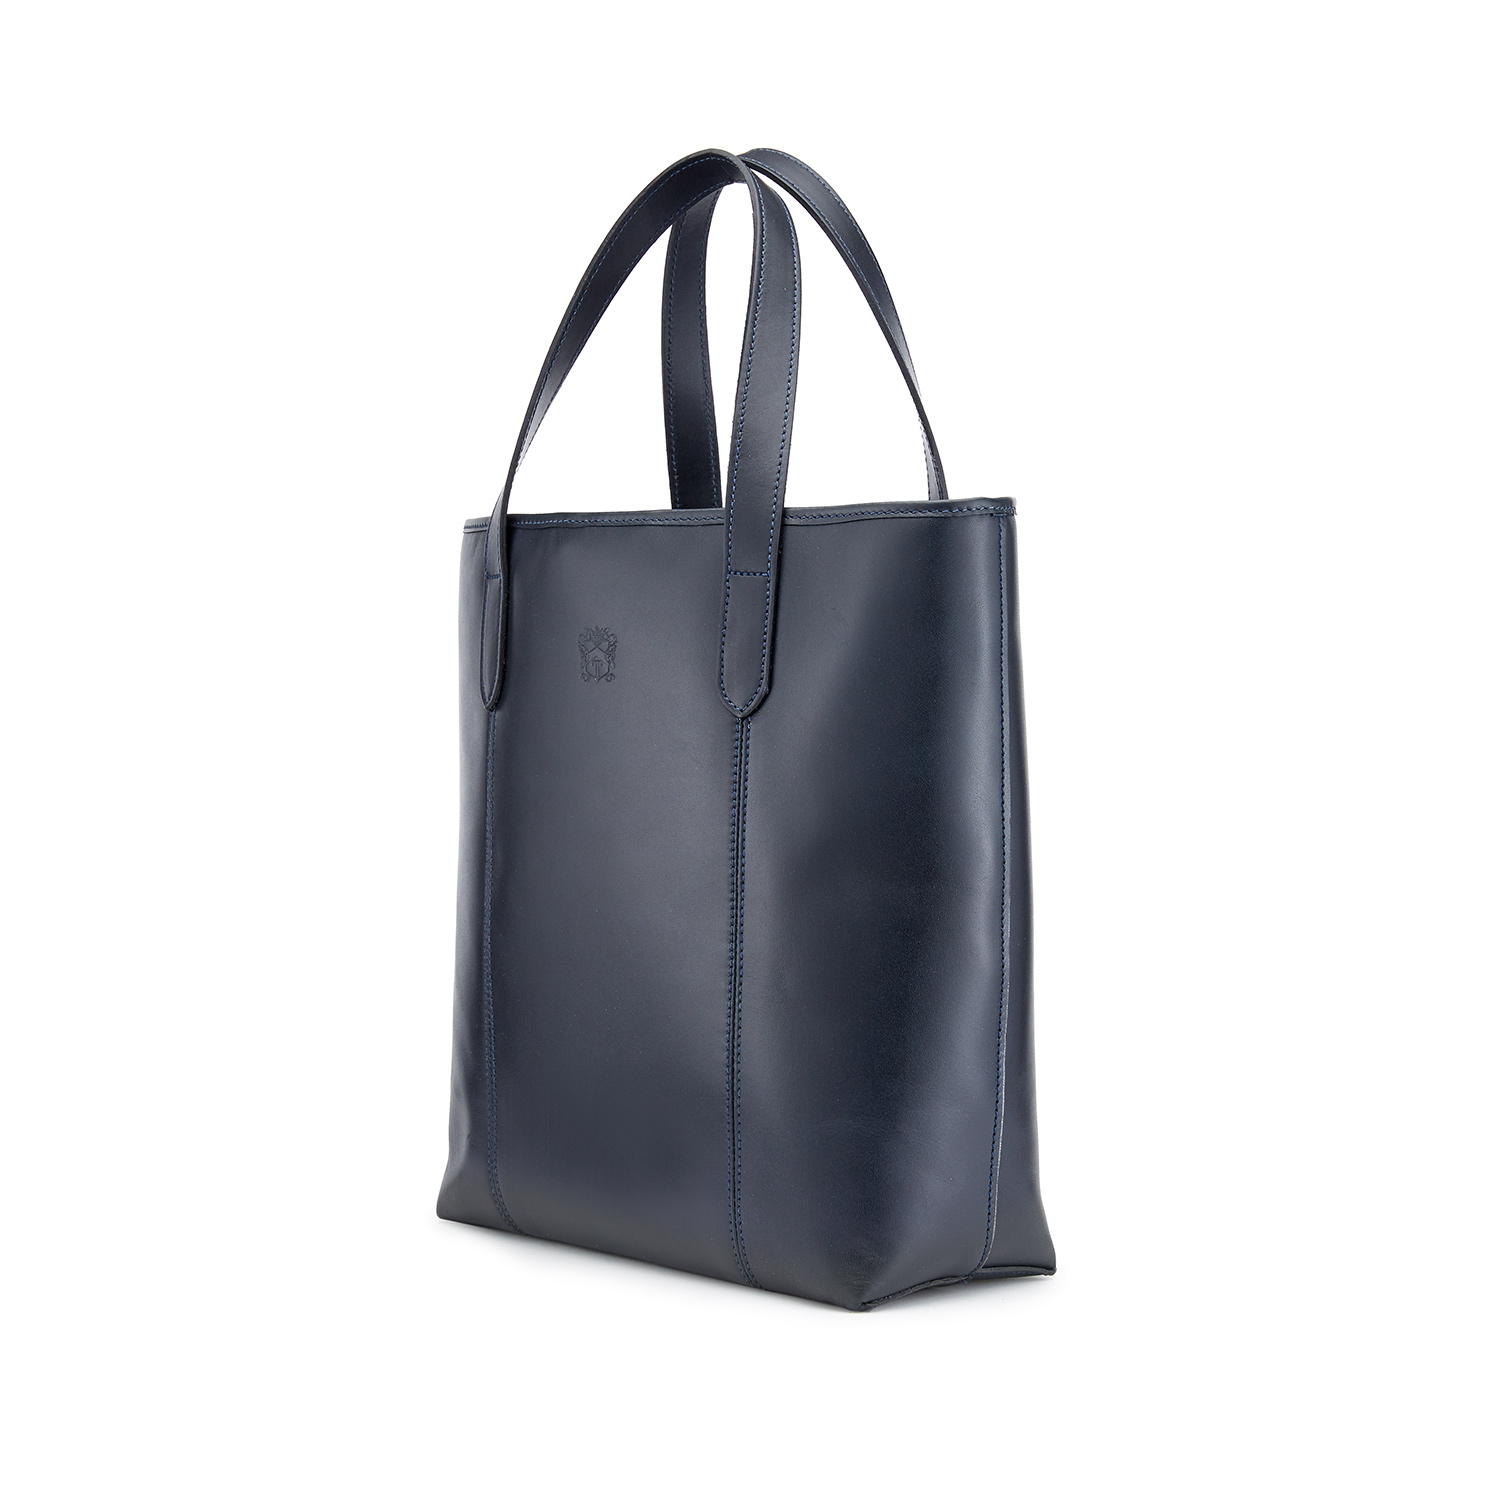 Tusting Leather Chelsea Tote Bag in Navy Angle